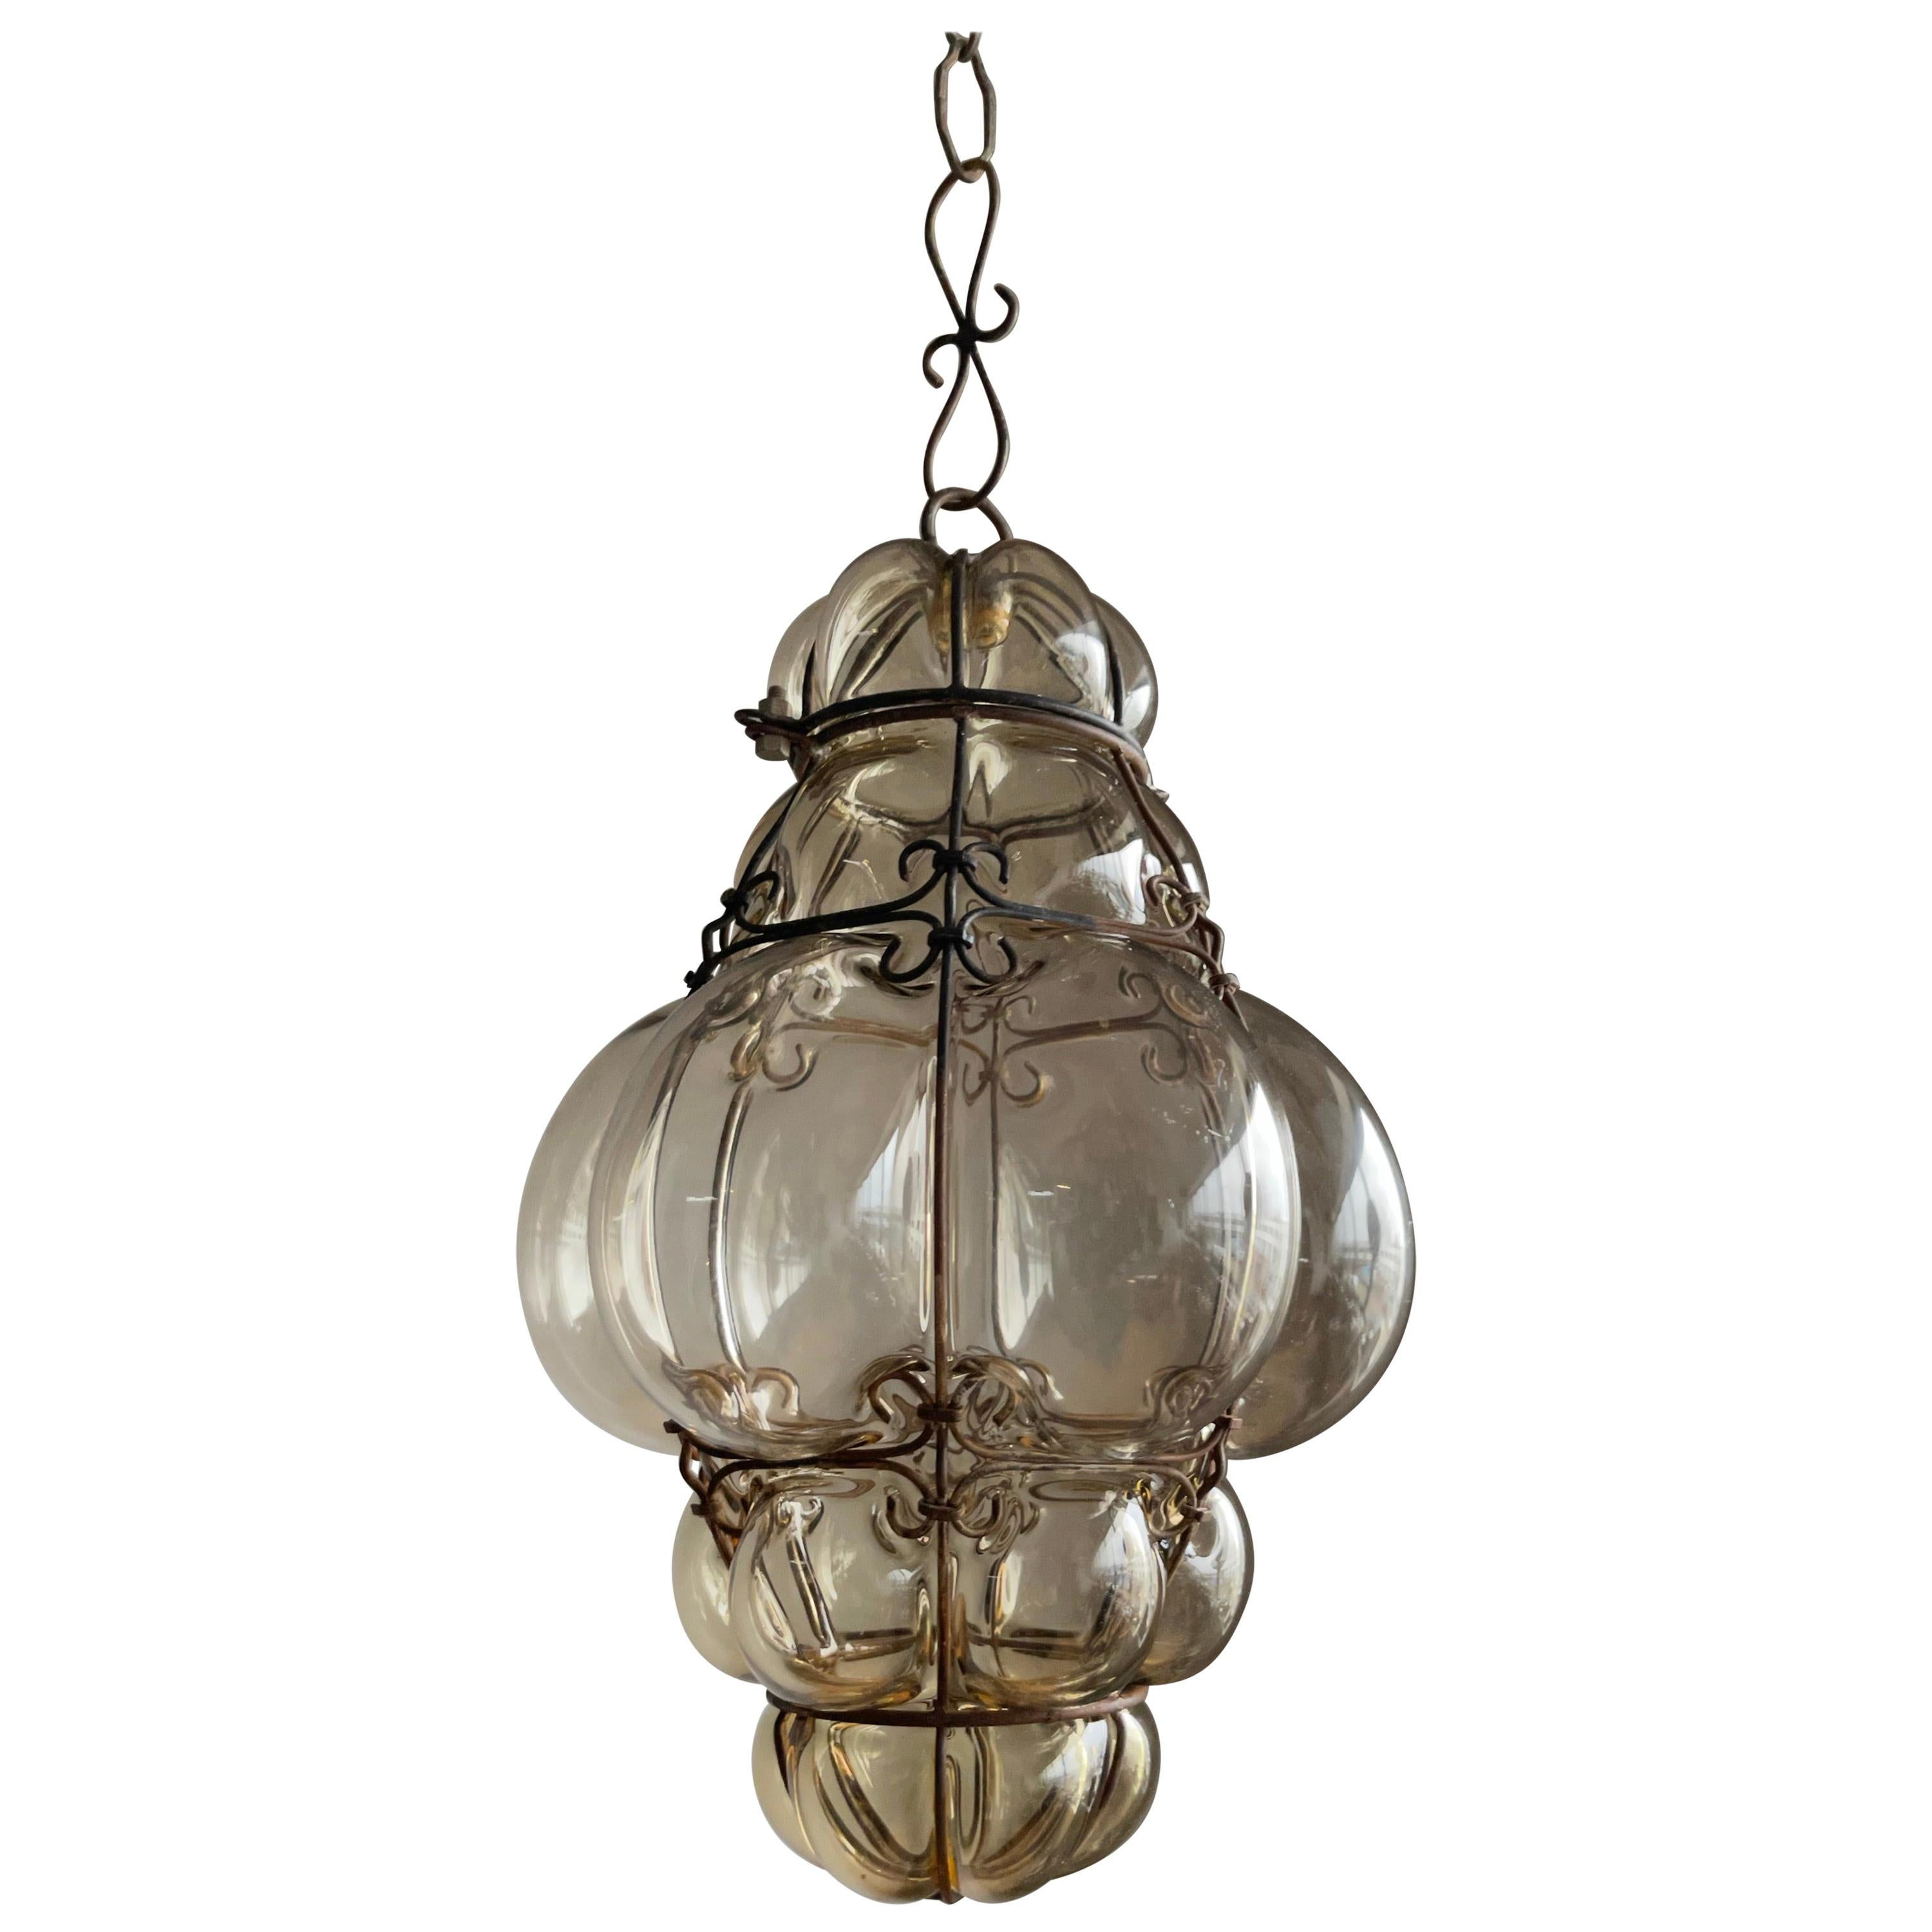 Great Venetian Murano Pendant Light with Mouthblown Smokey Amber Glass in Frame